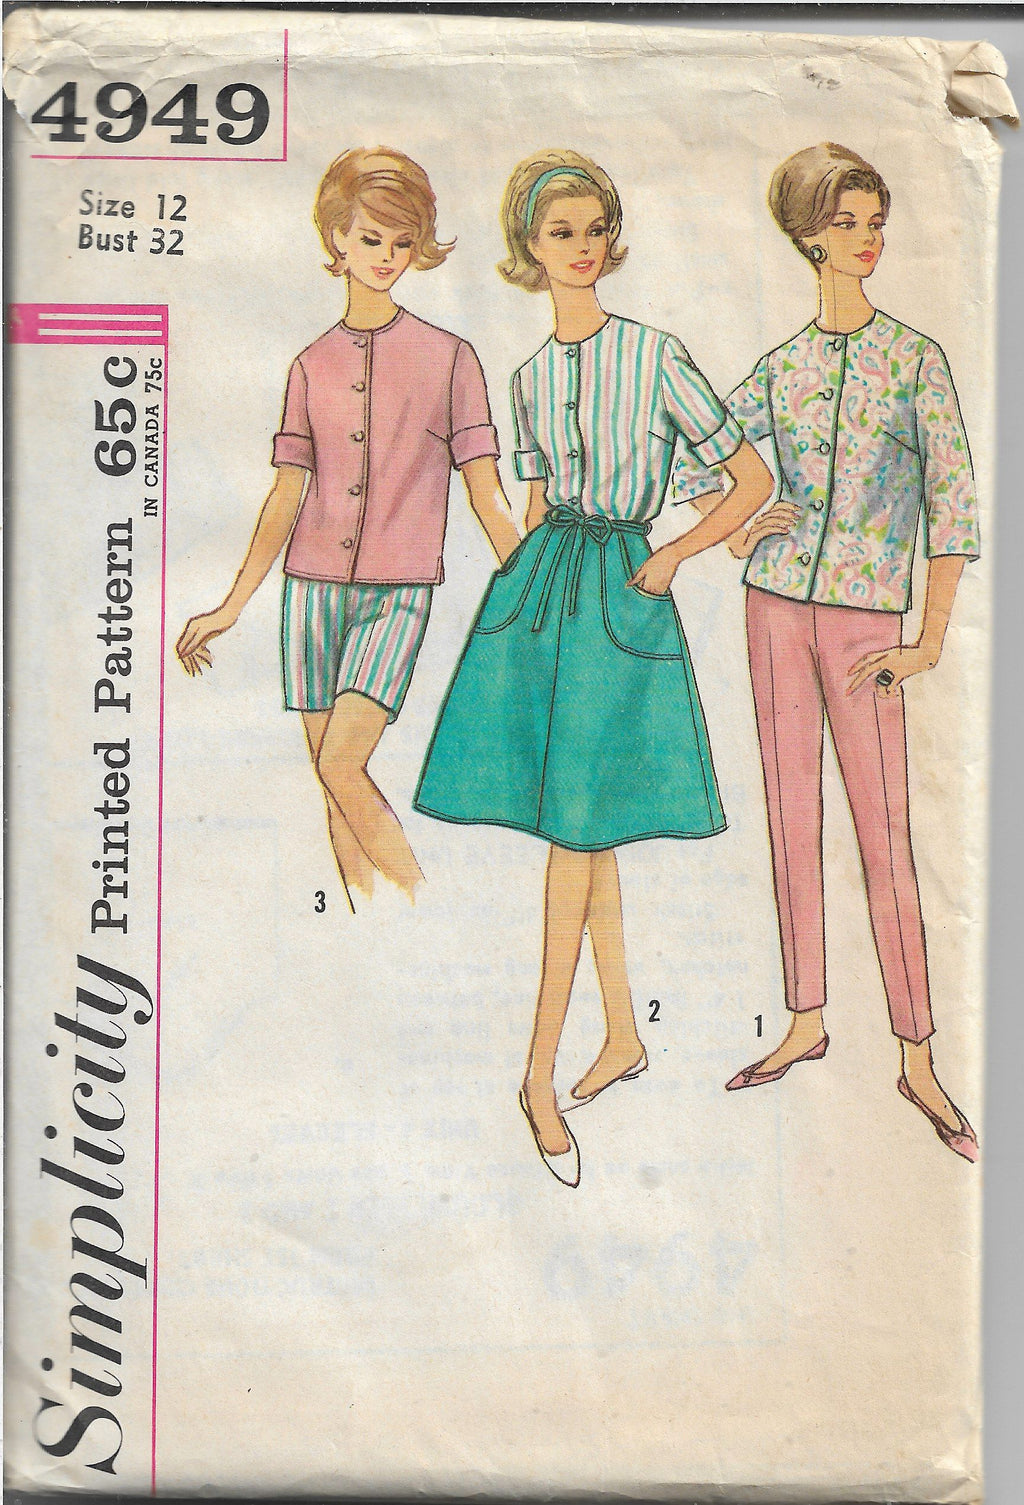 Simplicity 4949 Ladies Wrap Skirt Blouse Pants Vintage Sewing Pattern 1960s - VintageStitching - Vintage Sewing Patterns